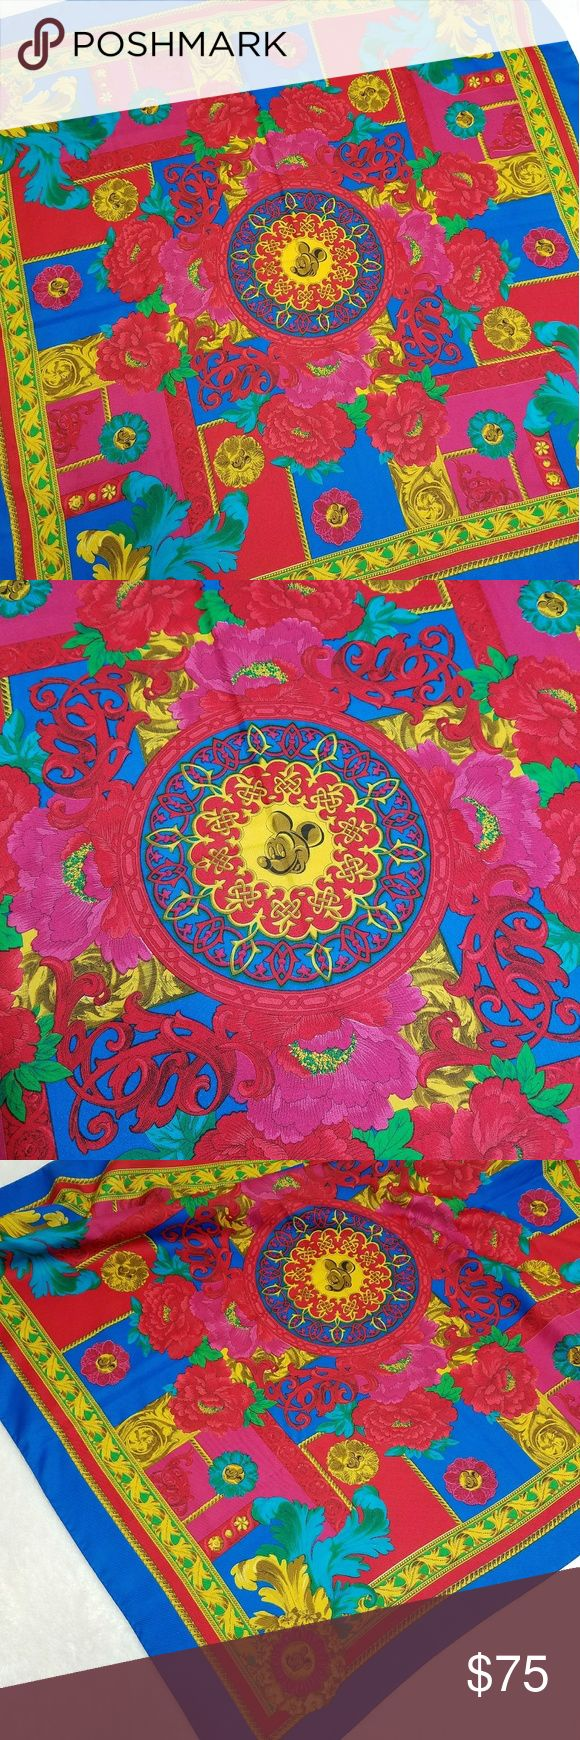 """Vintage Huge Wrap Scarf Mikey Mouse EuroDisney This gorgeous scarf from EuroDisney is a rare vintage find! -Excellent vintage condition- no stains, rips, or tears -Gorgeous colors! -Great collector item to add to your wardrobe Please use measurements for best fit, all measurements are taken laying flat: -34""""x34""""  -100% Polyester -Gold, blue, red (colors' appearance may vary on screen)  Questions? Just ask! Bundle to save!  Offers welcome  Happy Poshing! Disney Accessories Scarves & Wraps"""